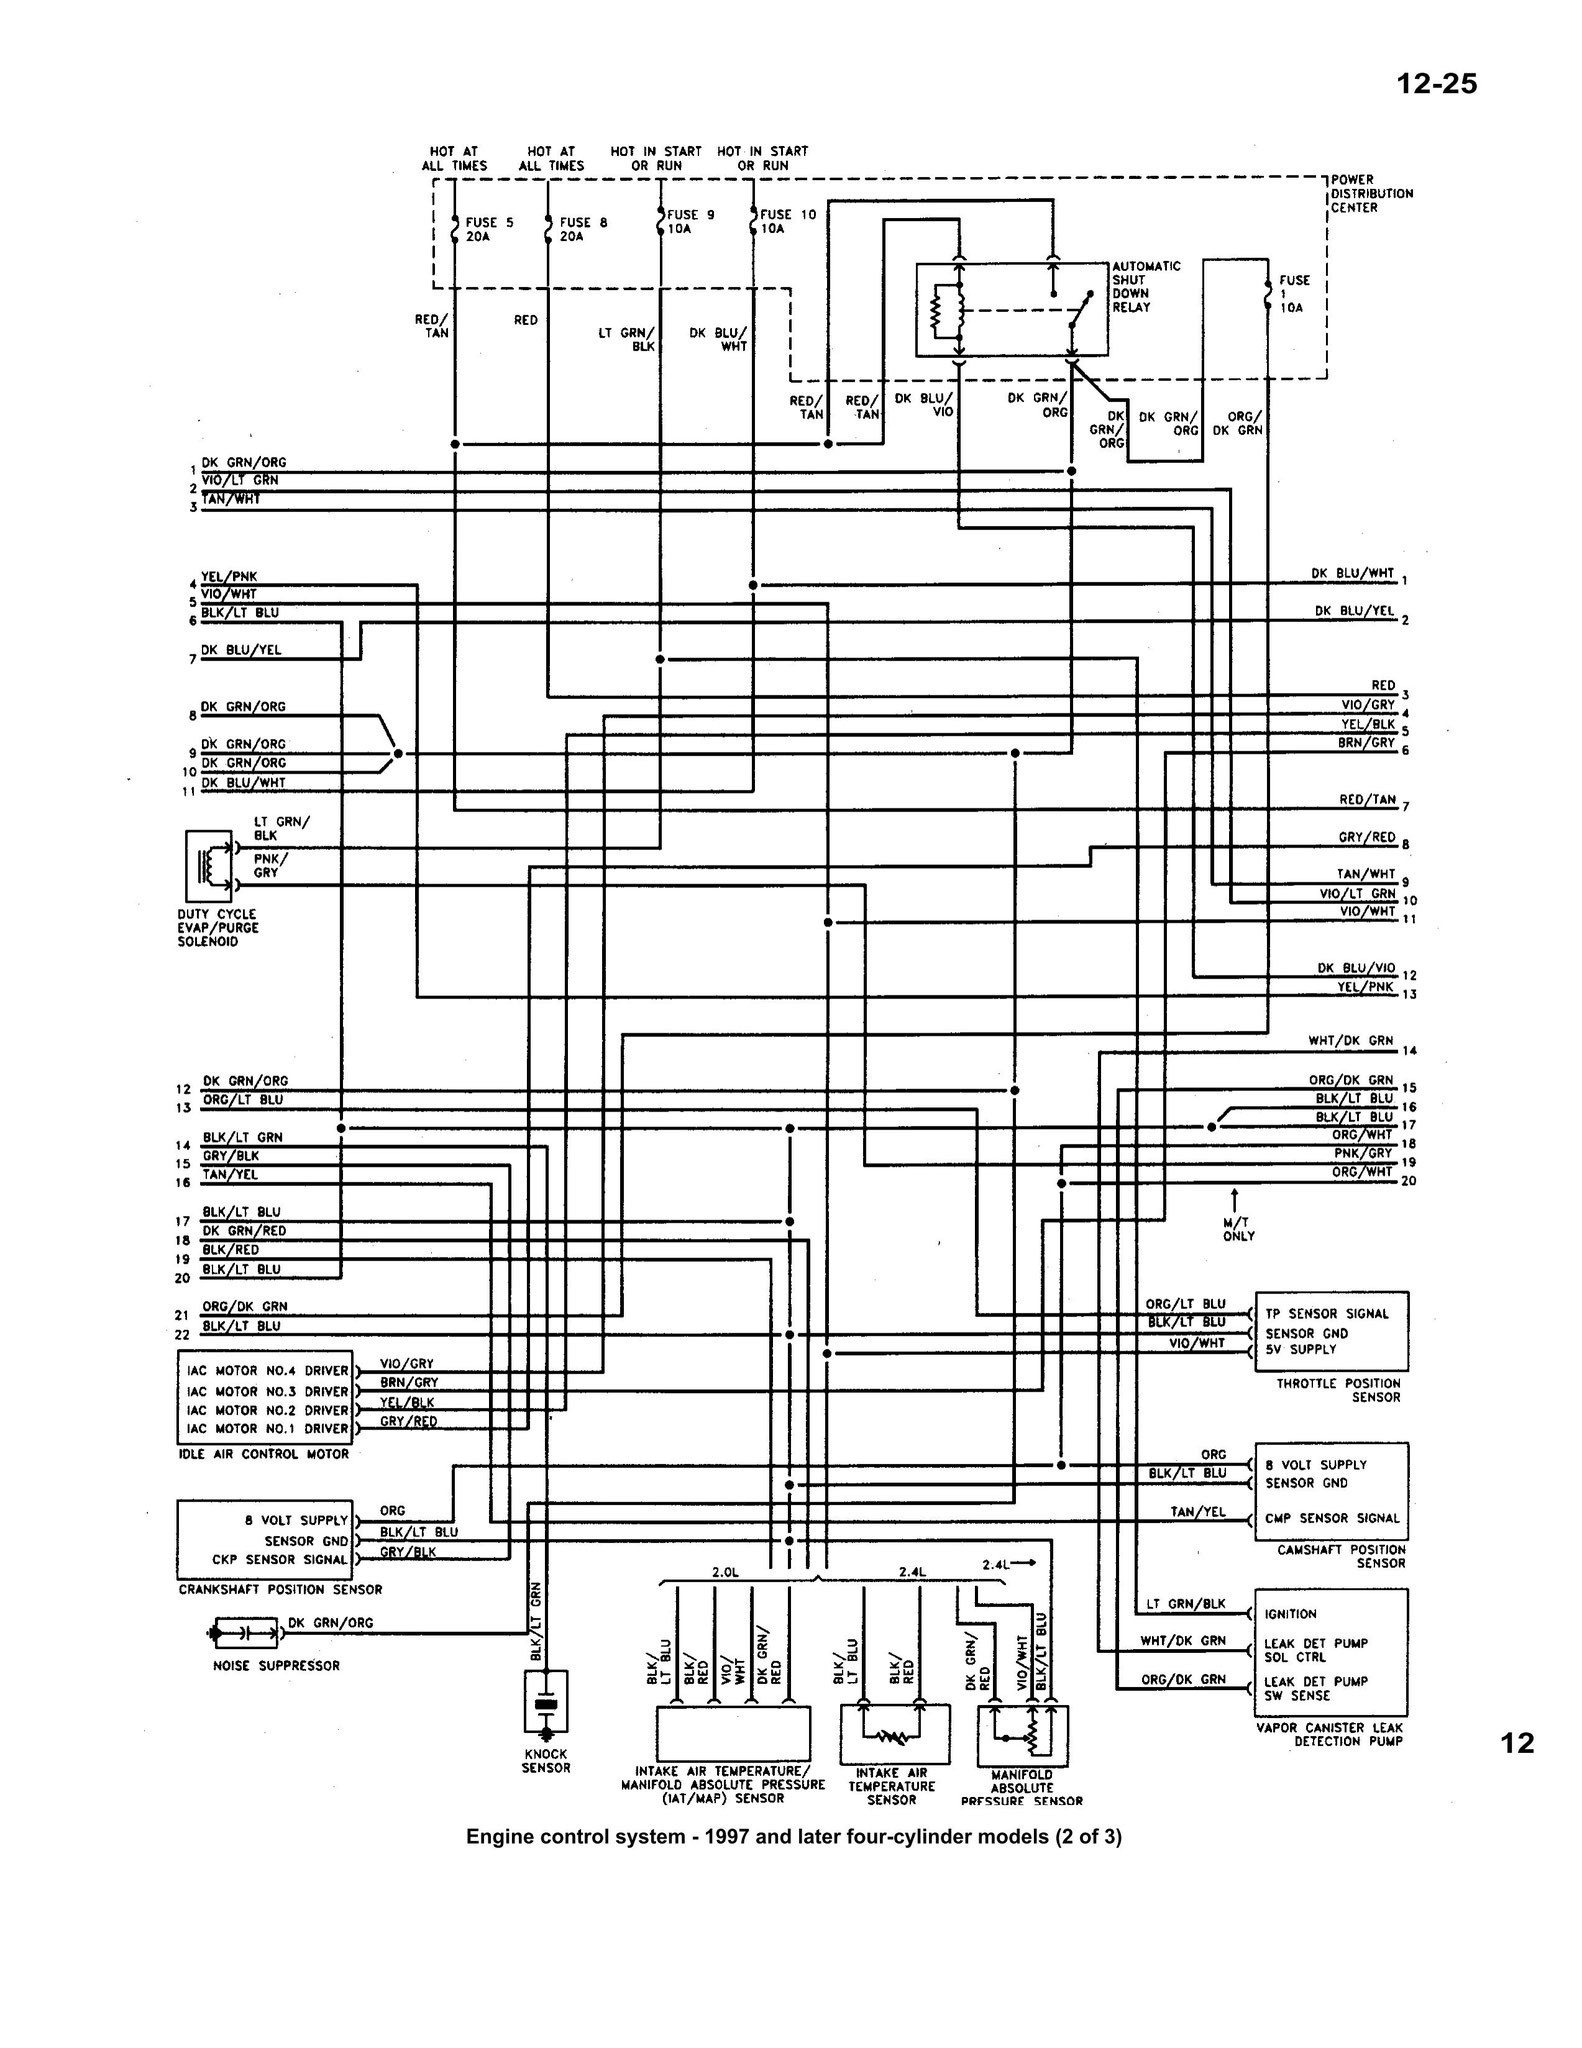 Wiring Diagram 1995 Plymouth Voyager